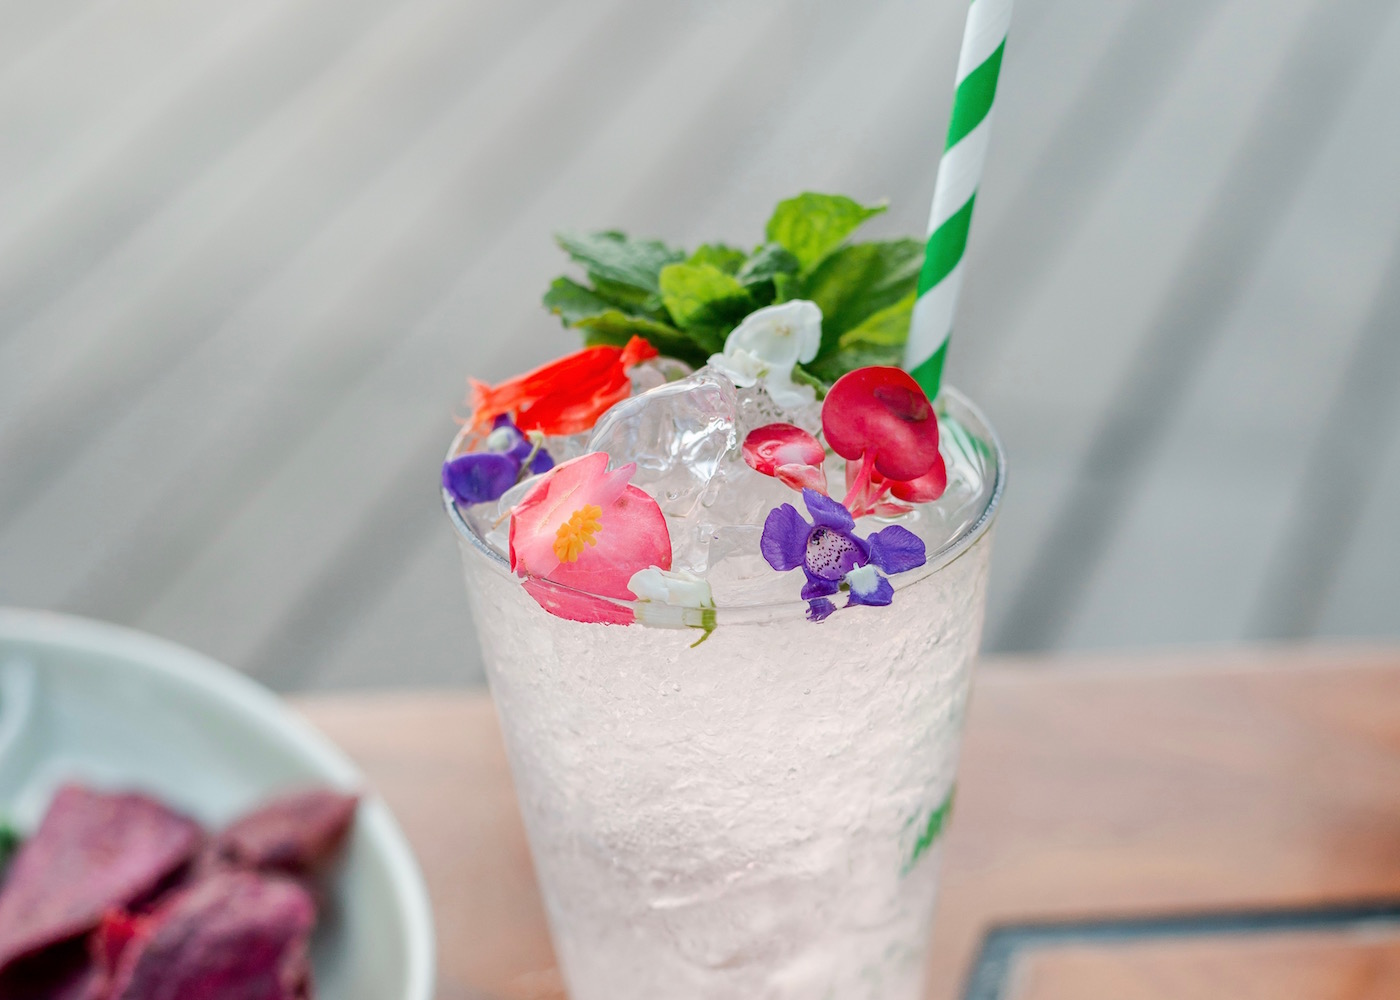 Flower Mojito at Woobar cocktail bar in Seminyak, Bali, Indonesia